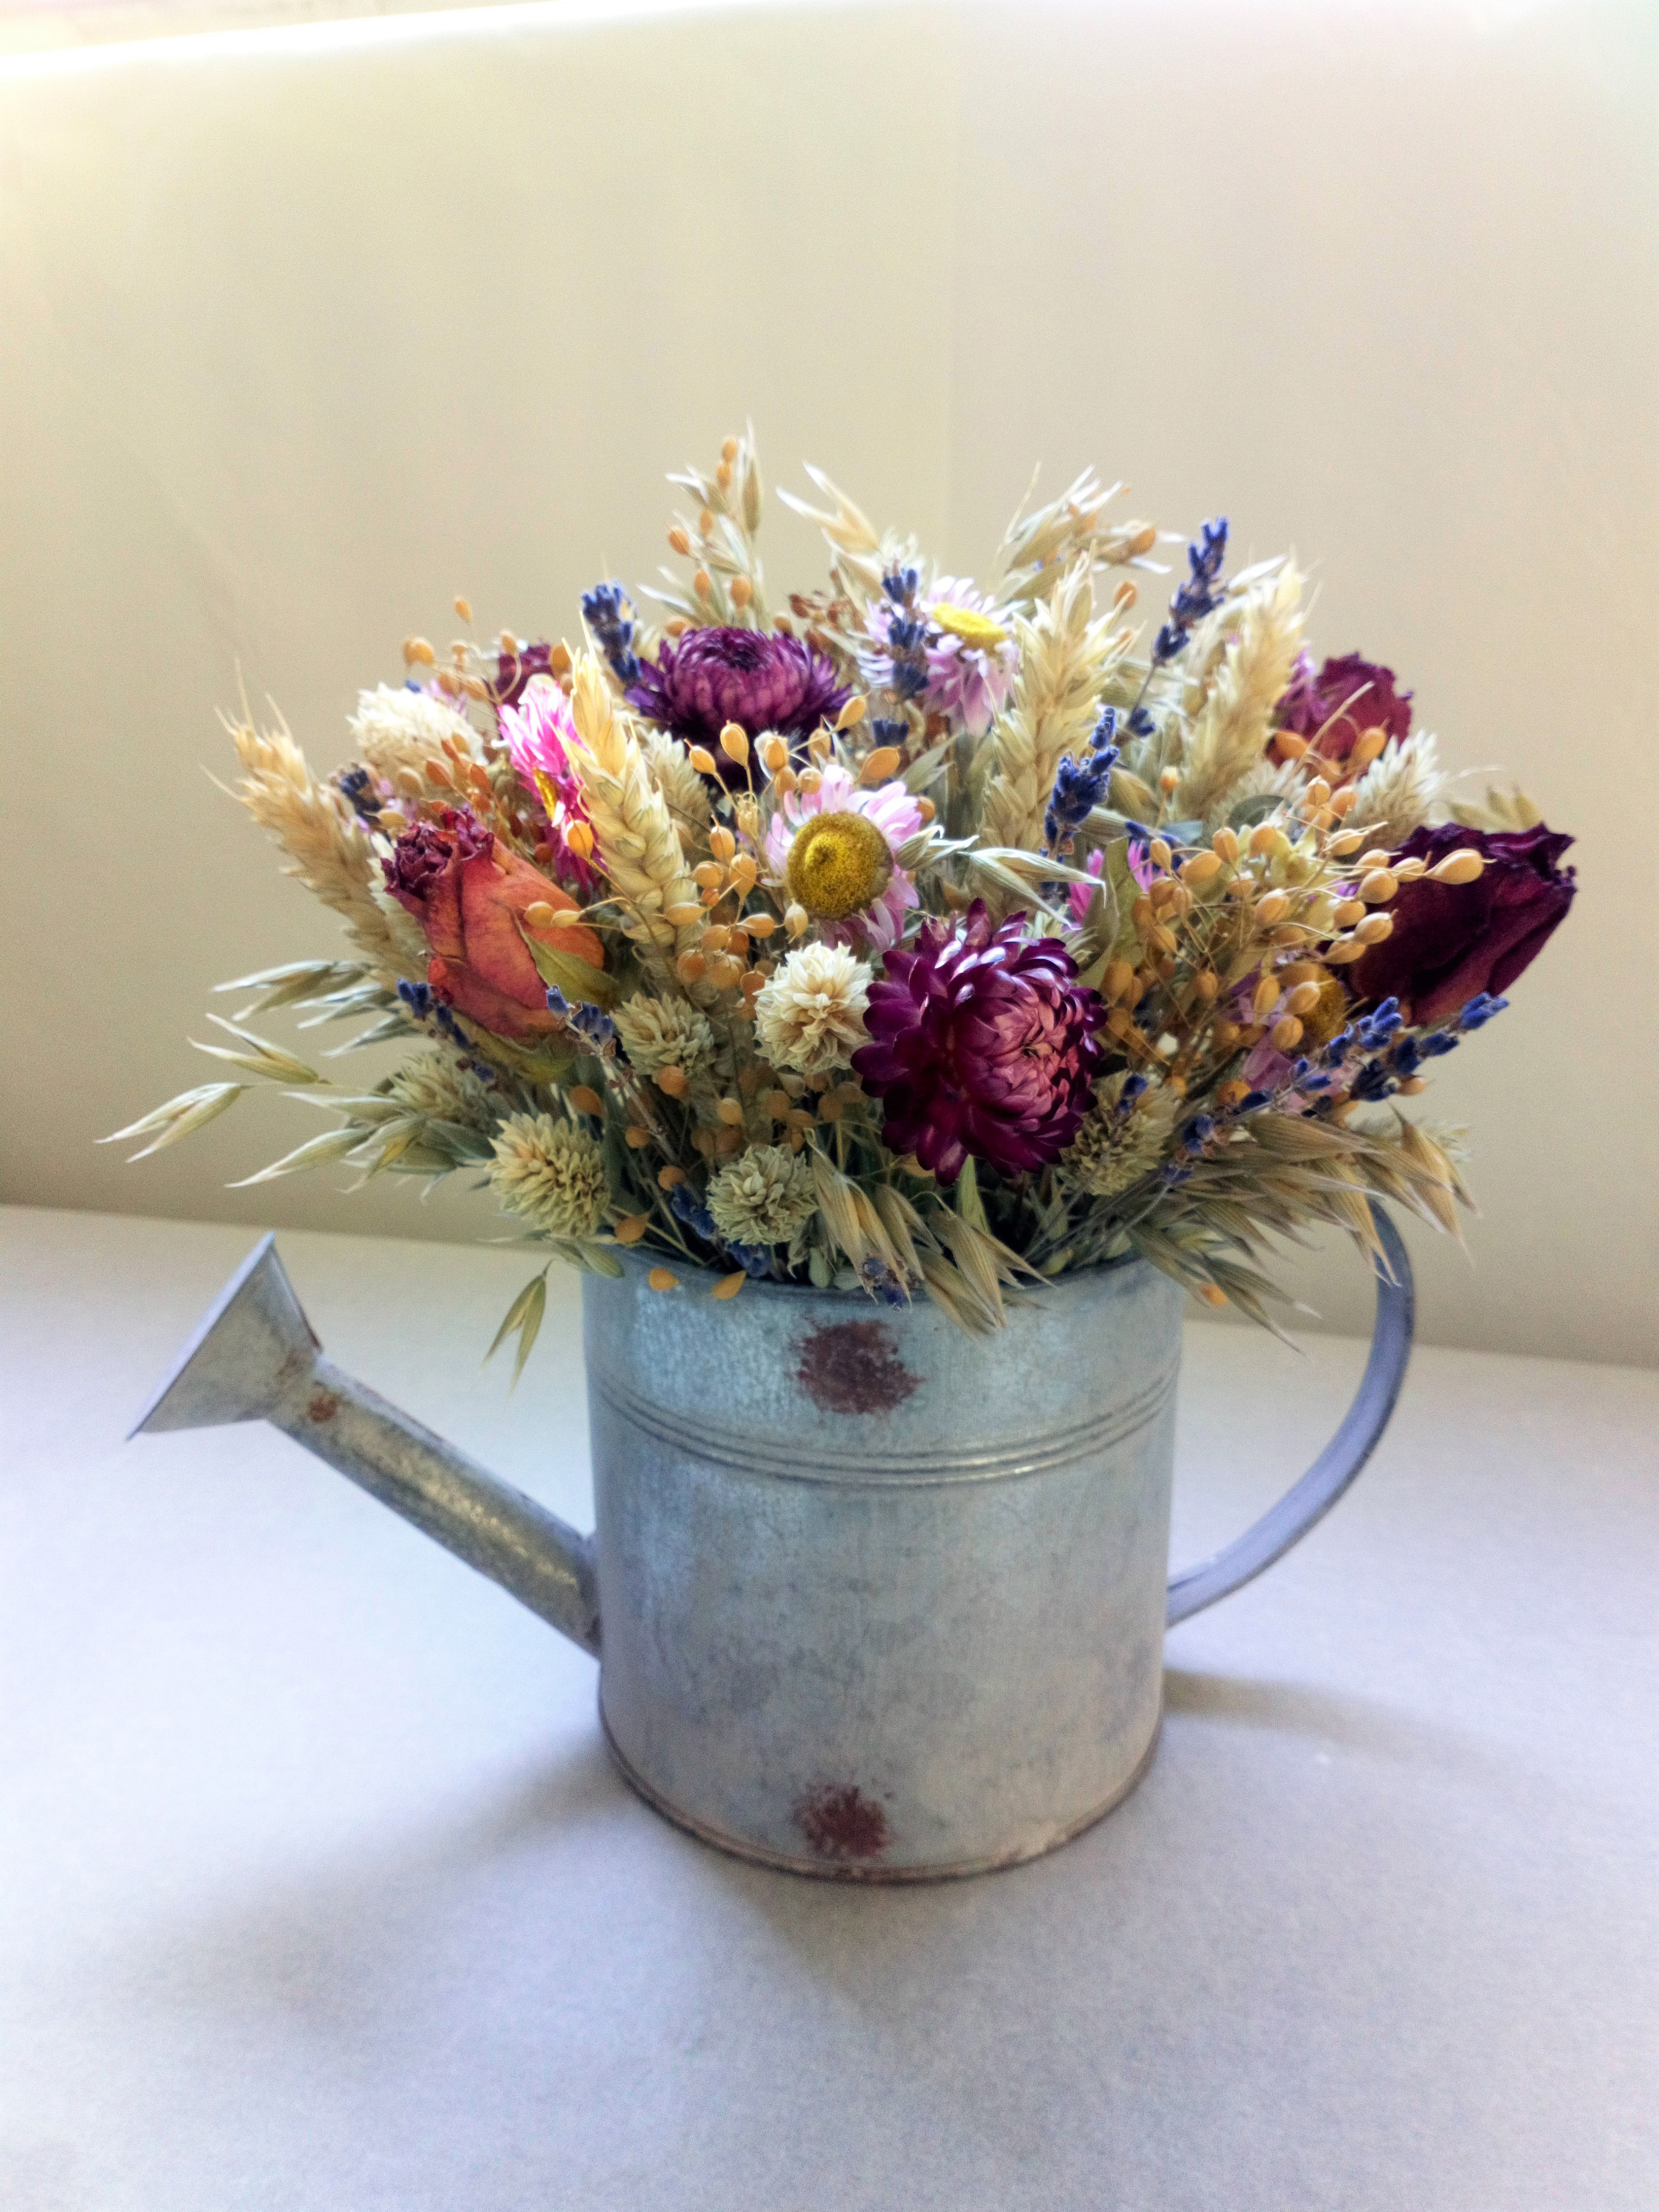 Dried flowers dried wedding flowers dried flowers bouquets pin it on pinterest bella poppy flower design mightylinksfo